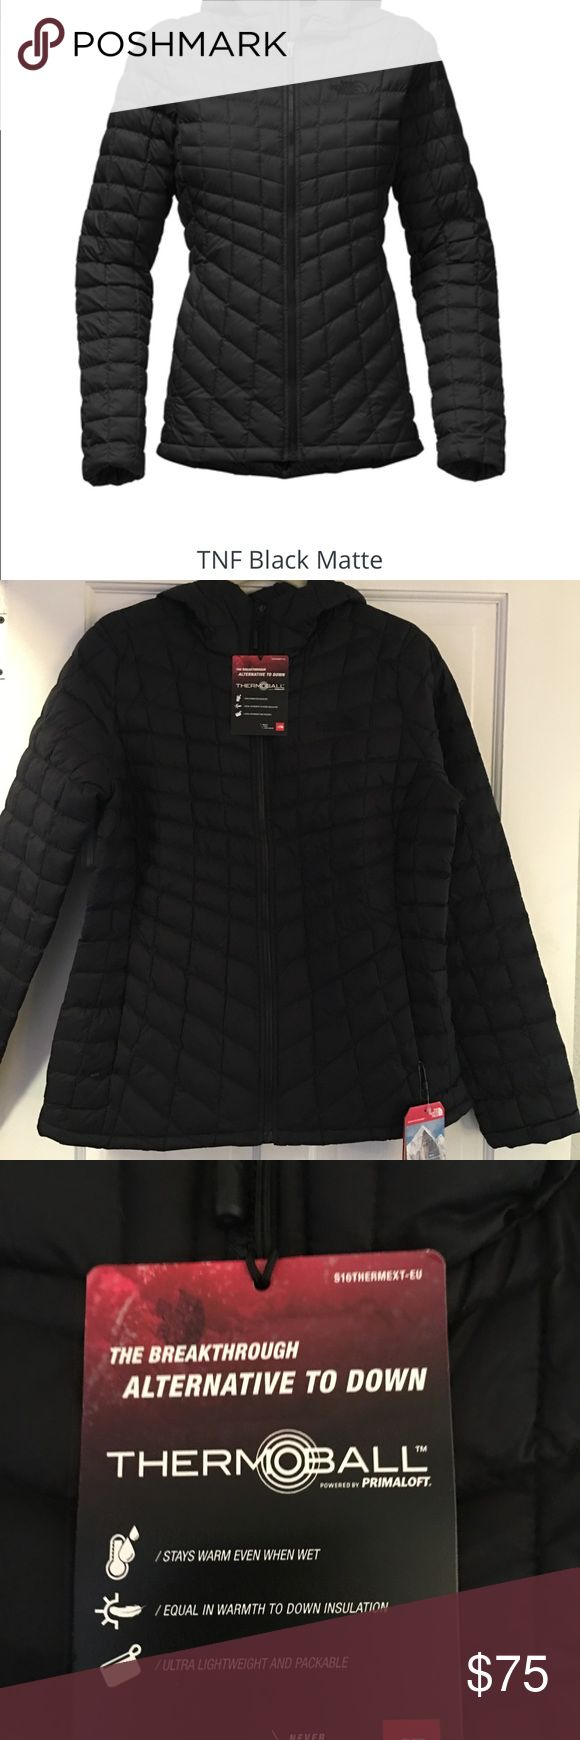 """Women's The North Face Thermoball Jacket New Women's """"The North Face""""  Thermoball jacket  Stays warm even when wet, equal in warmth to down insulation, ultra lightweight and packable. Size: Large Color: Matte Black The North Face Jackets & Coats Utility Jackets"""